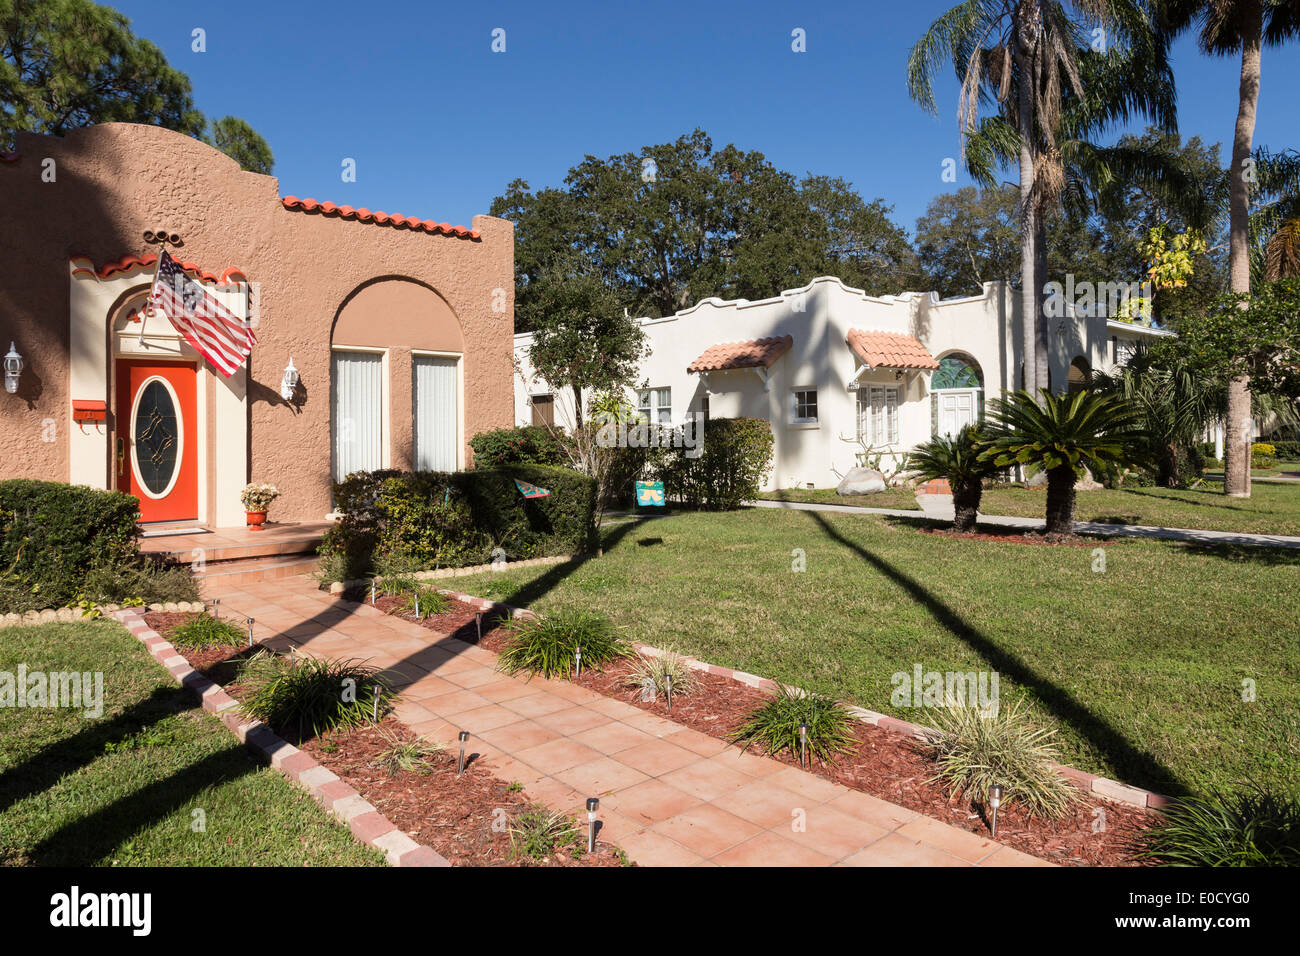 1930's Style Florida Bungalows, and Tropical Landscaping, Residential Neighborhood Tampa, FL, USA - Stock Image